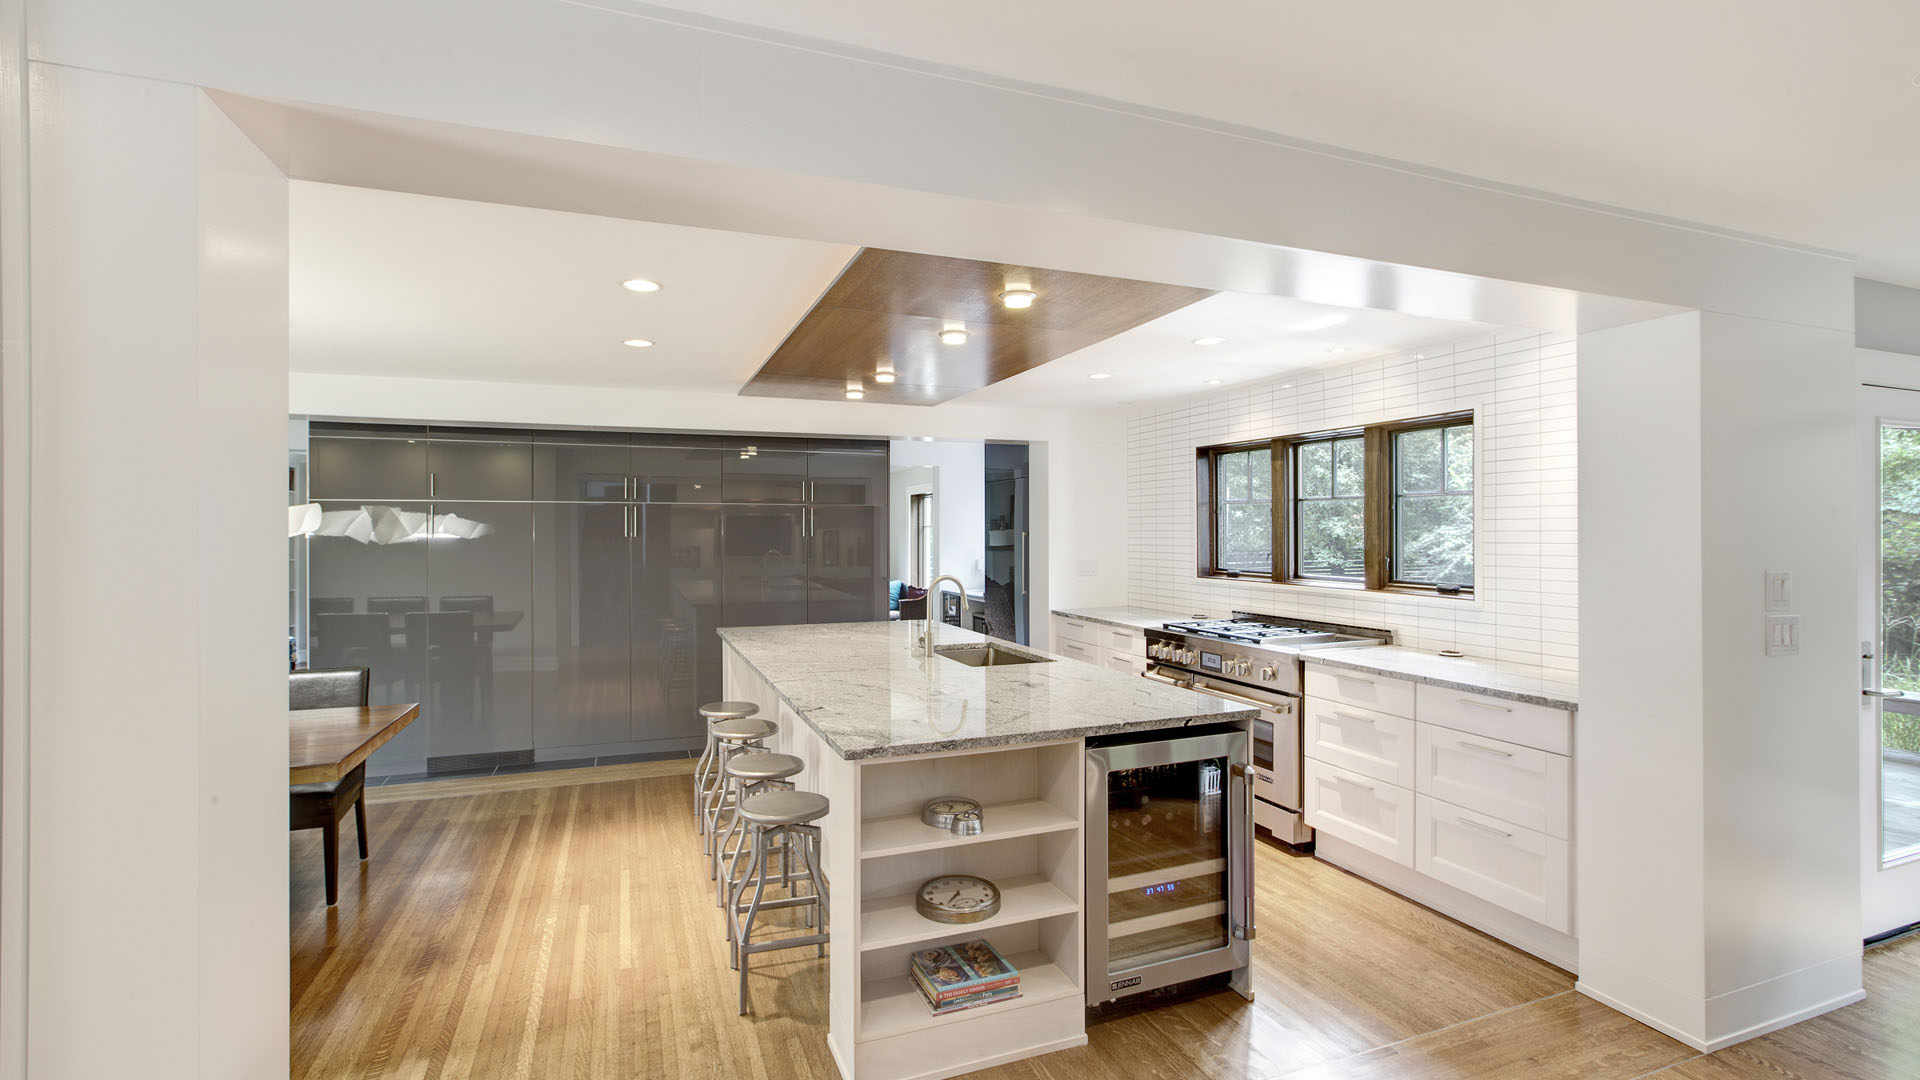 Classic Butler Tarkington Modern Tudor Renovation, Open Concept Kitchen with Large Full Height Storage Wall and Large Island Subway Tile Backsplash Stacked Bond Ceiling Cloud, HAUS Architecture, WERK Building Modern, Christopher Short, Indianapolis Architect